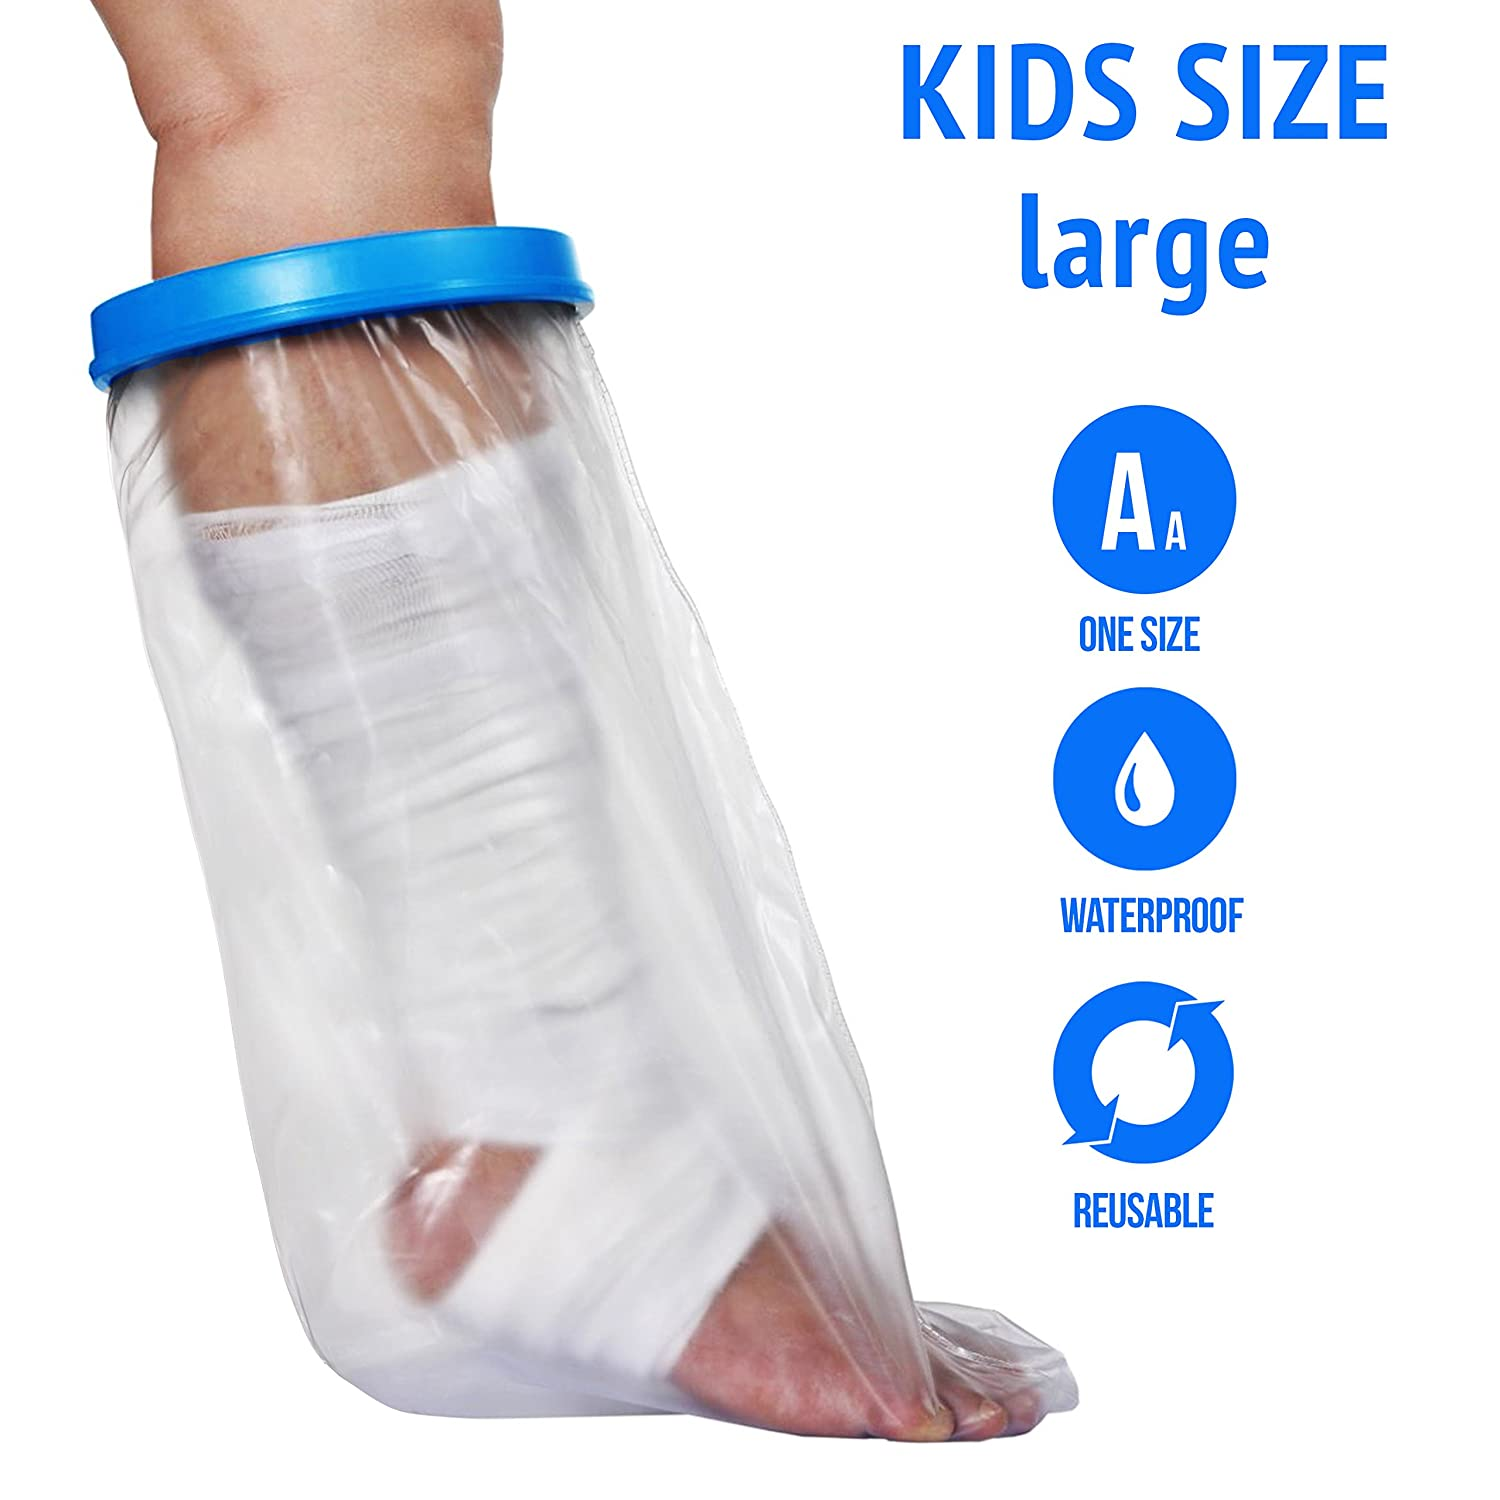 Waterproof Cast Cover For Shower & Bath - Kids Legs. Reusable, 100% Sealed Water Protector Keeps Casts & Bandages Dry. Covers Broken Leg, Foot, Ankle, Wounds, Burns. Full Watertight Protection. MediSeal